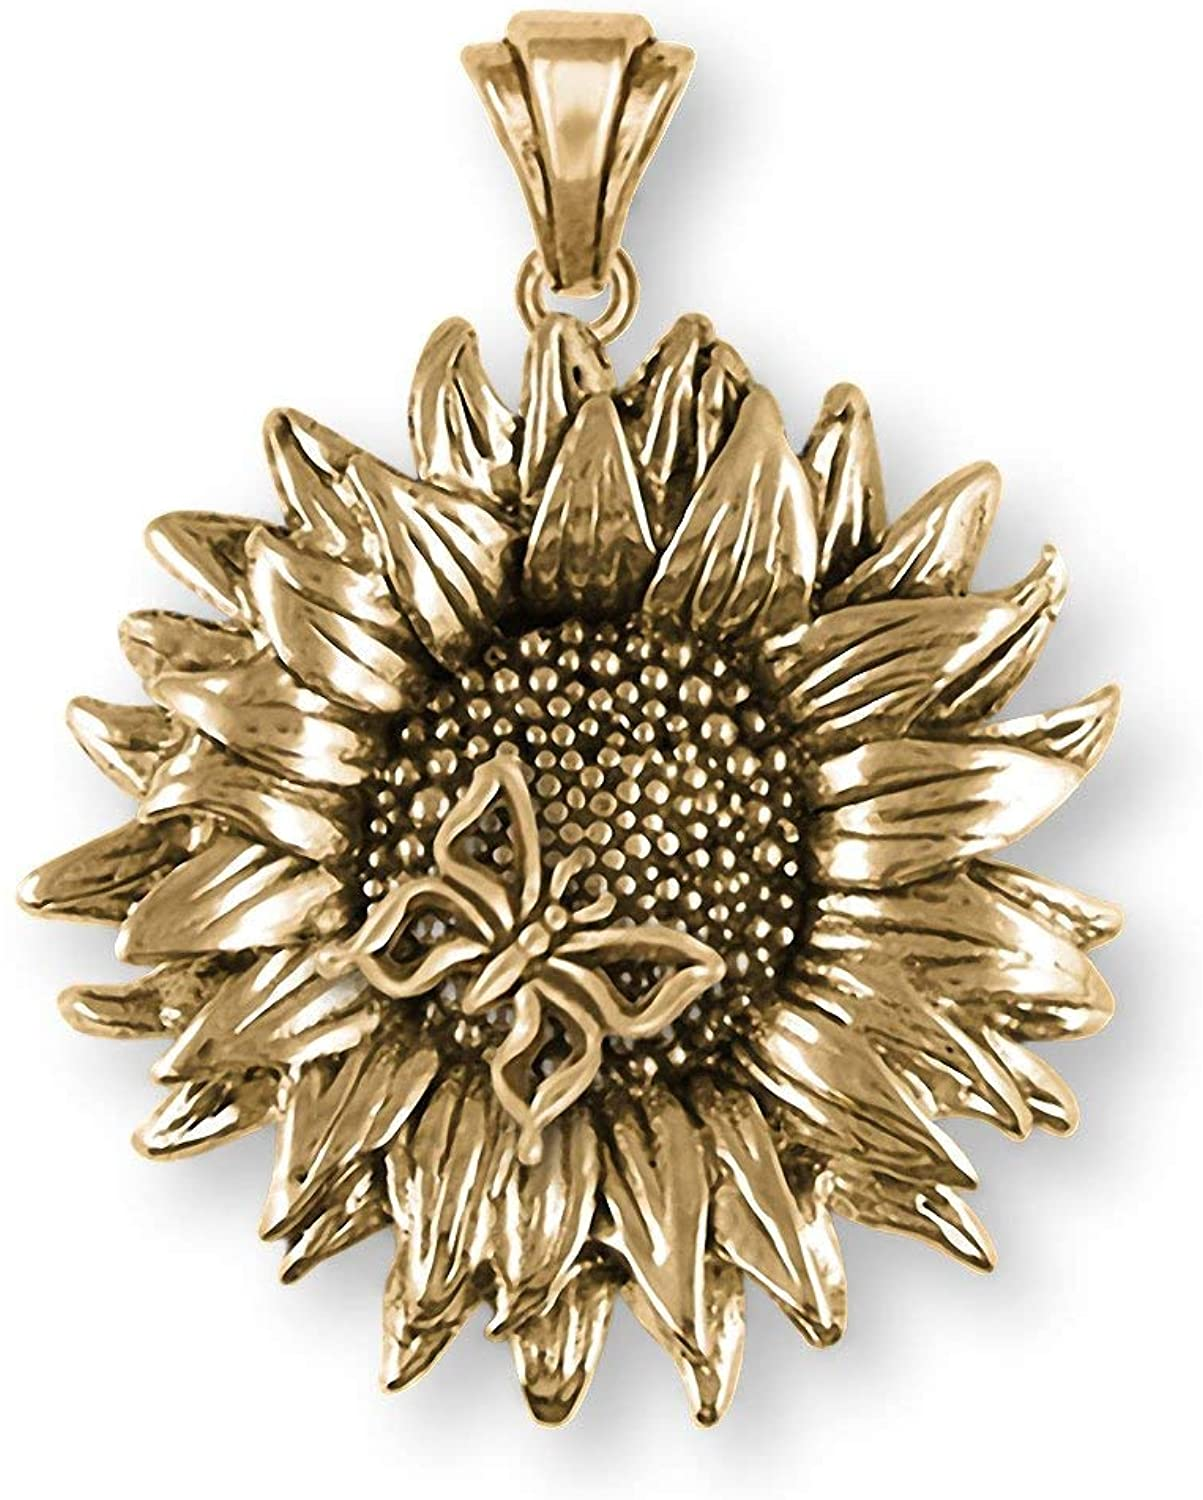 Sunflower Jewelry 14k Yellow Gold Handmade Sunflower With Butterfly Pendant SFTX6-BUTPG